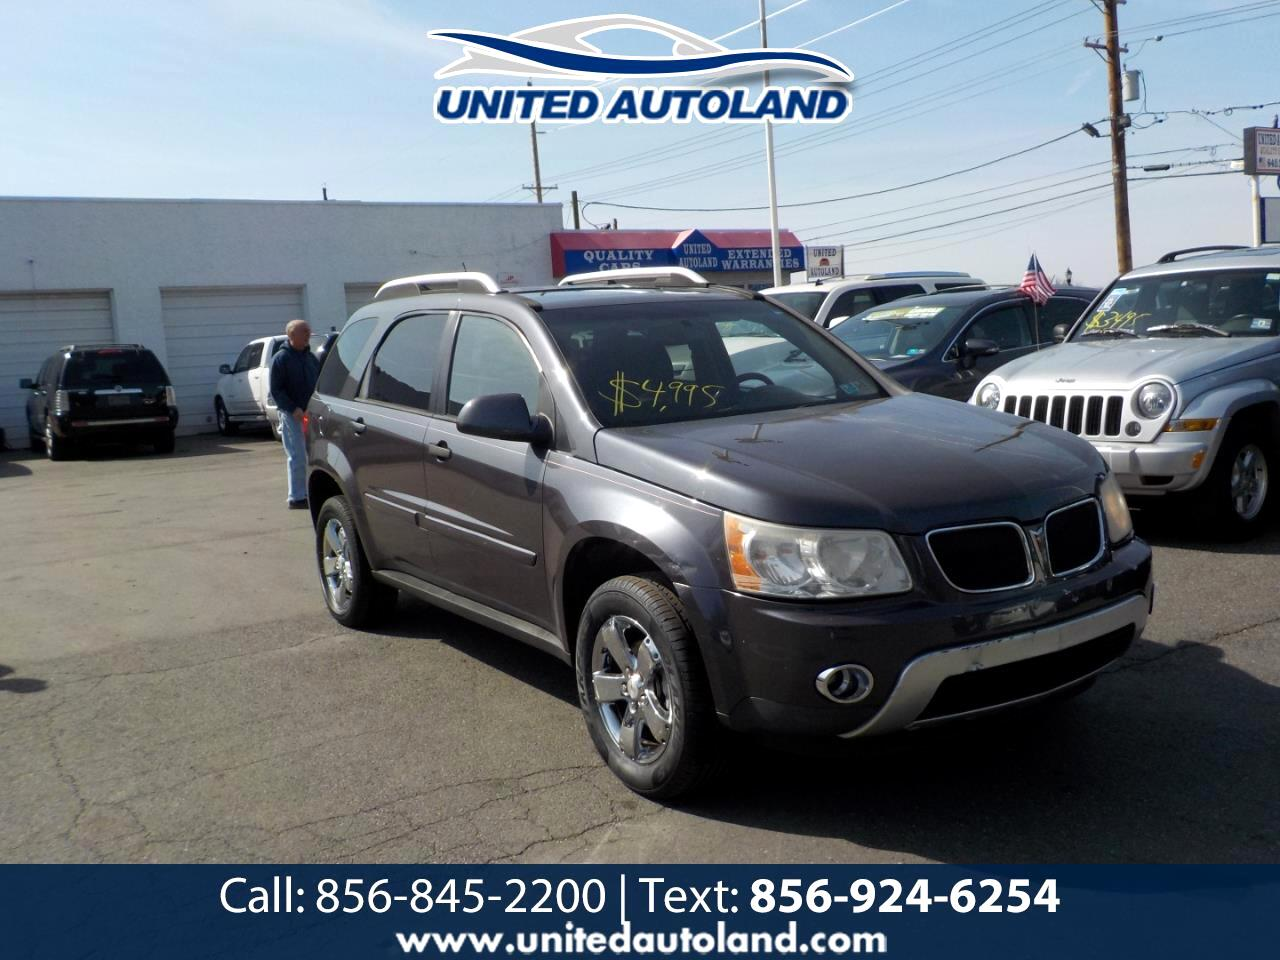 Pontiac Torrent FWD 4dr 2007